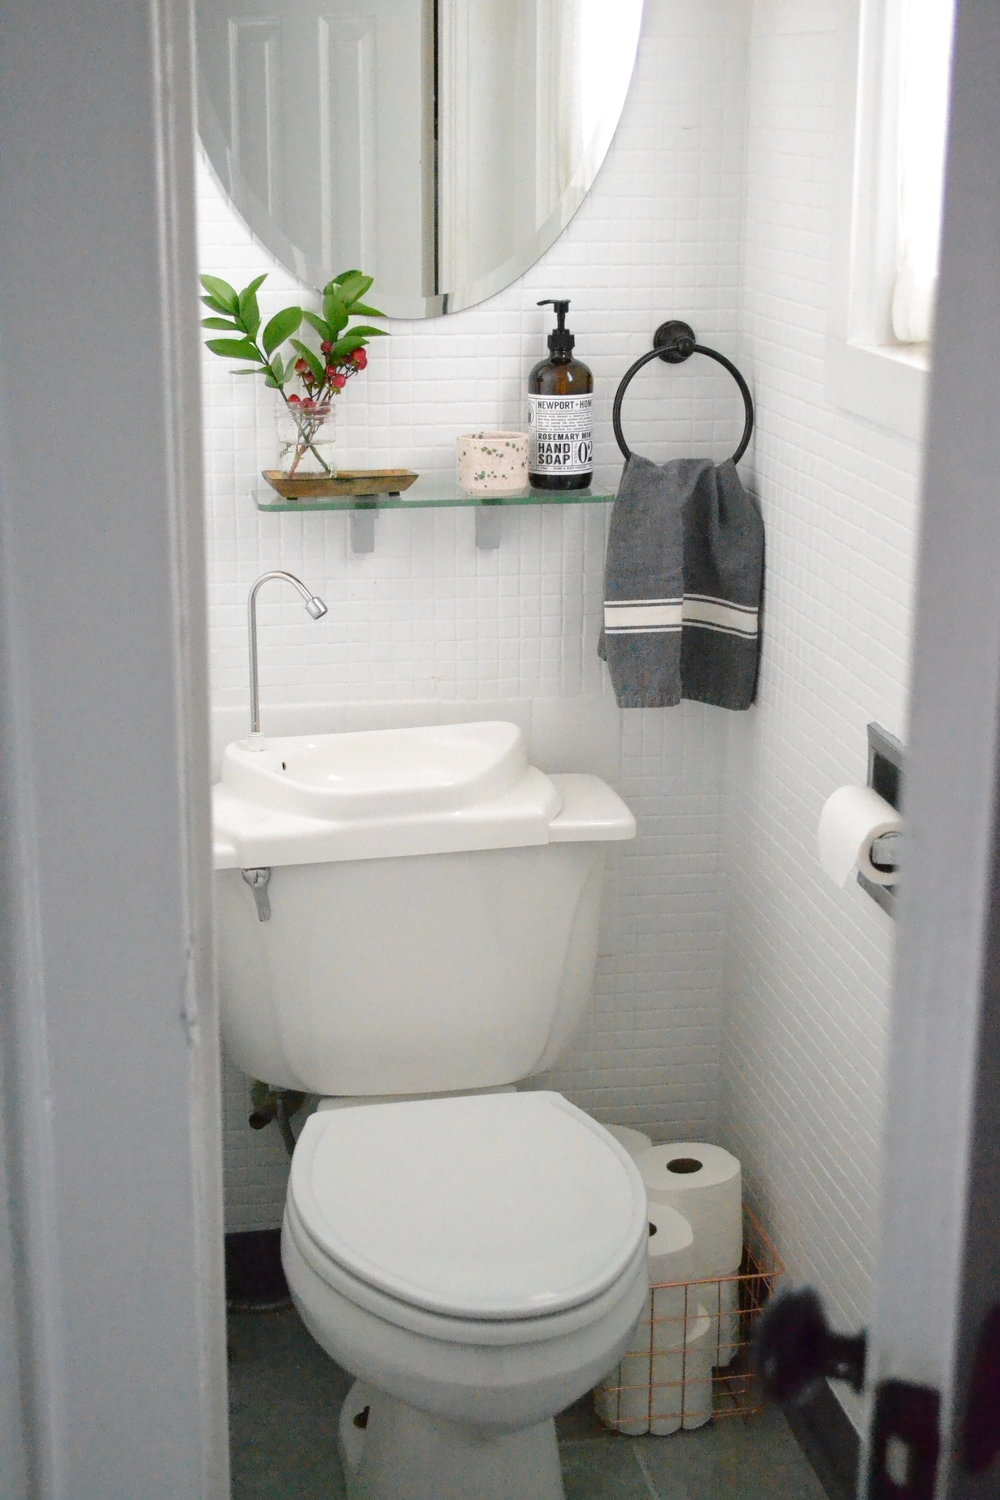 Our first floor powder room after some quick fixes.